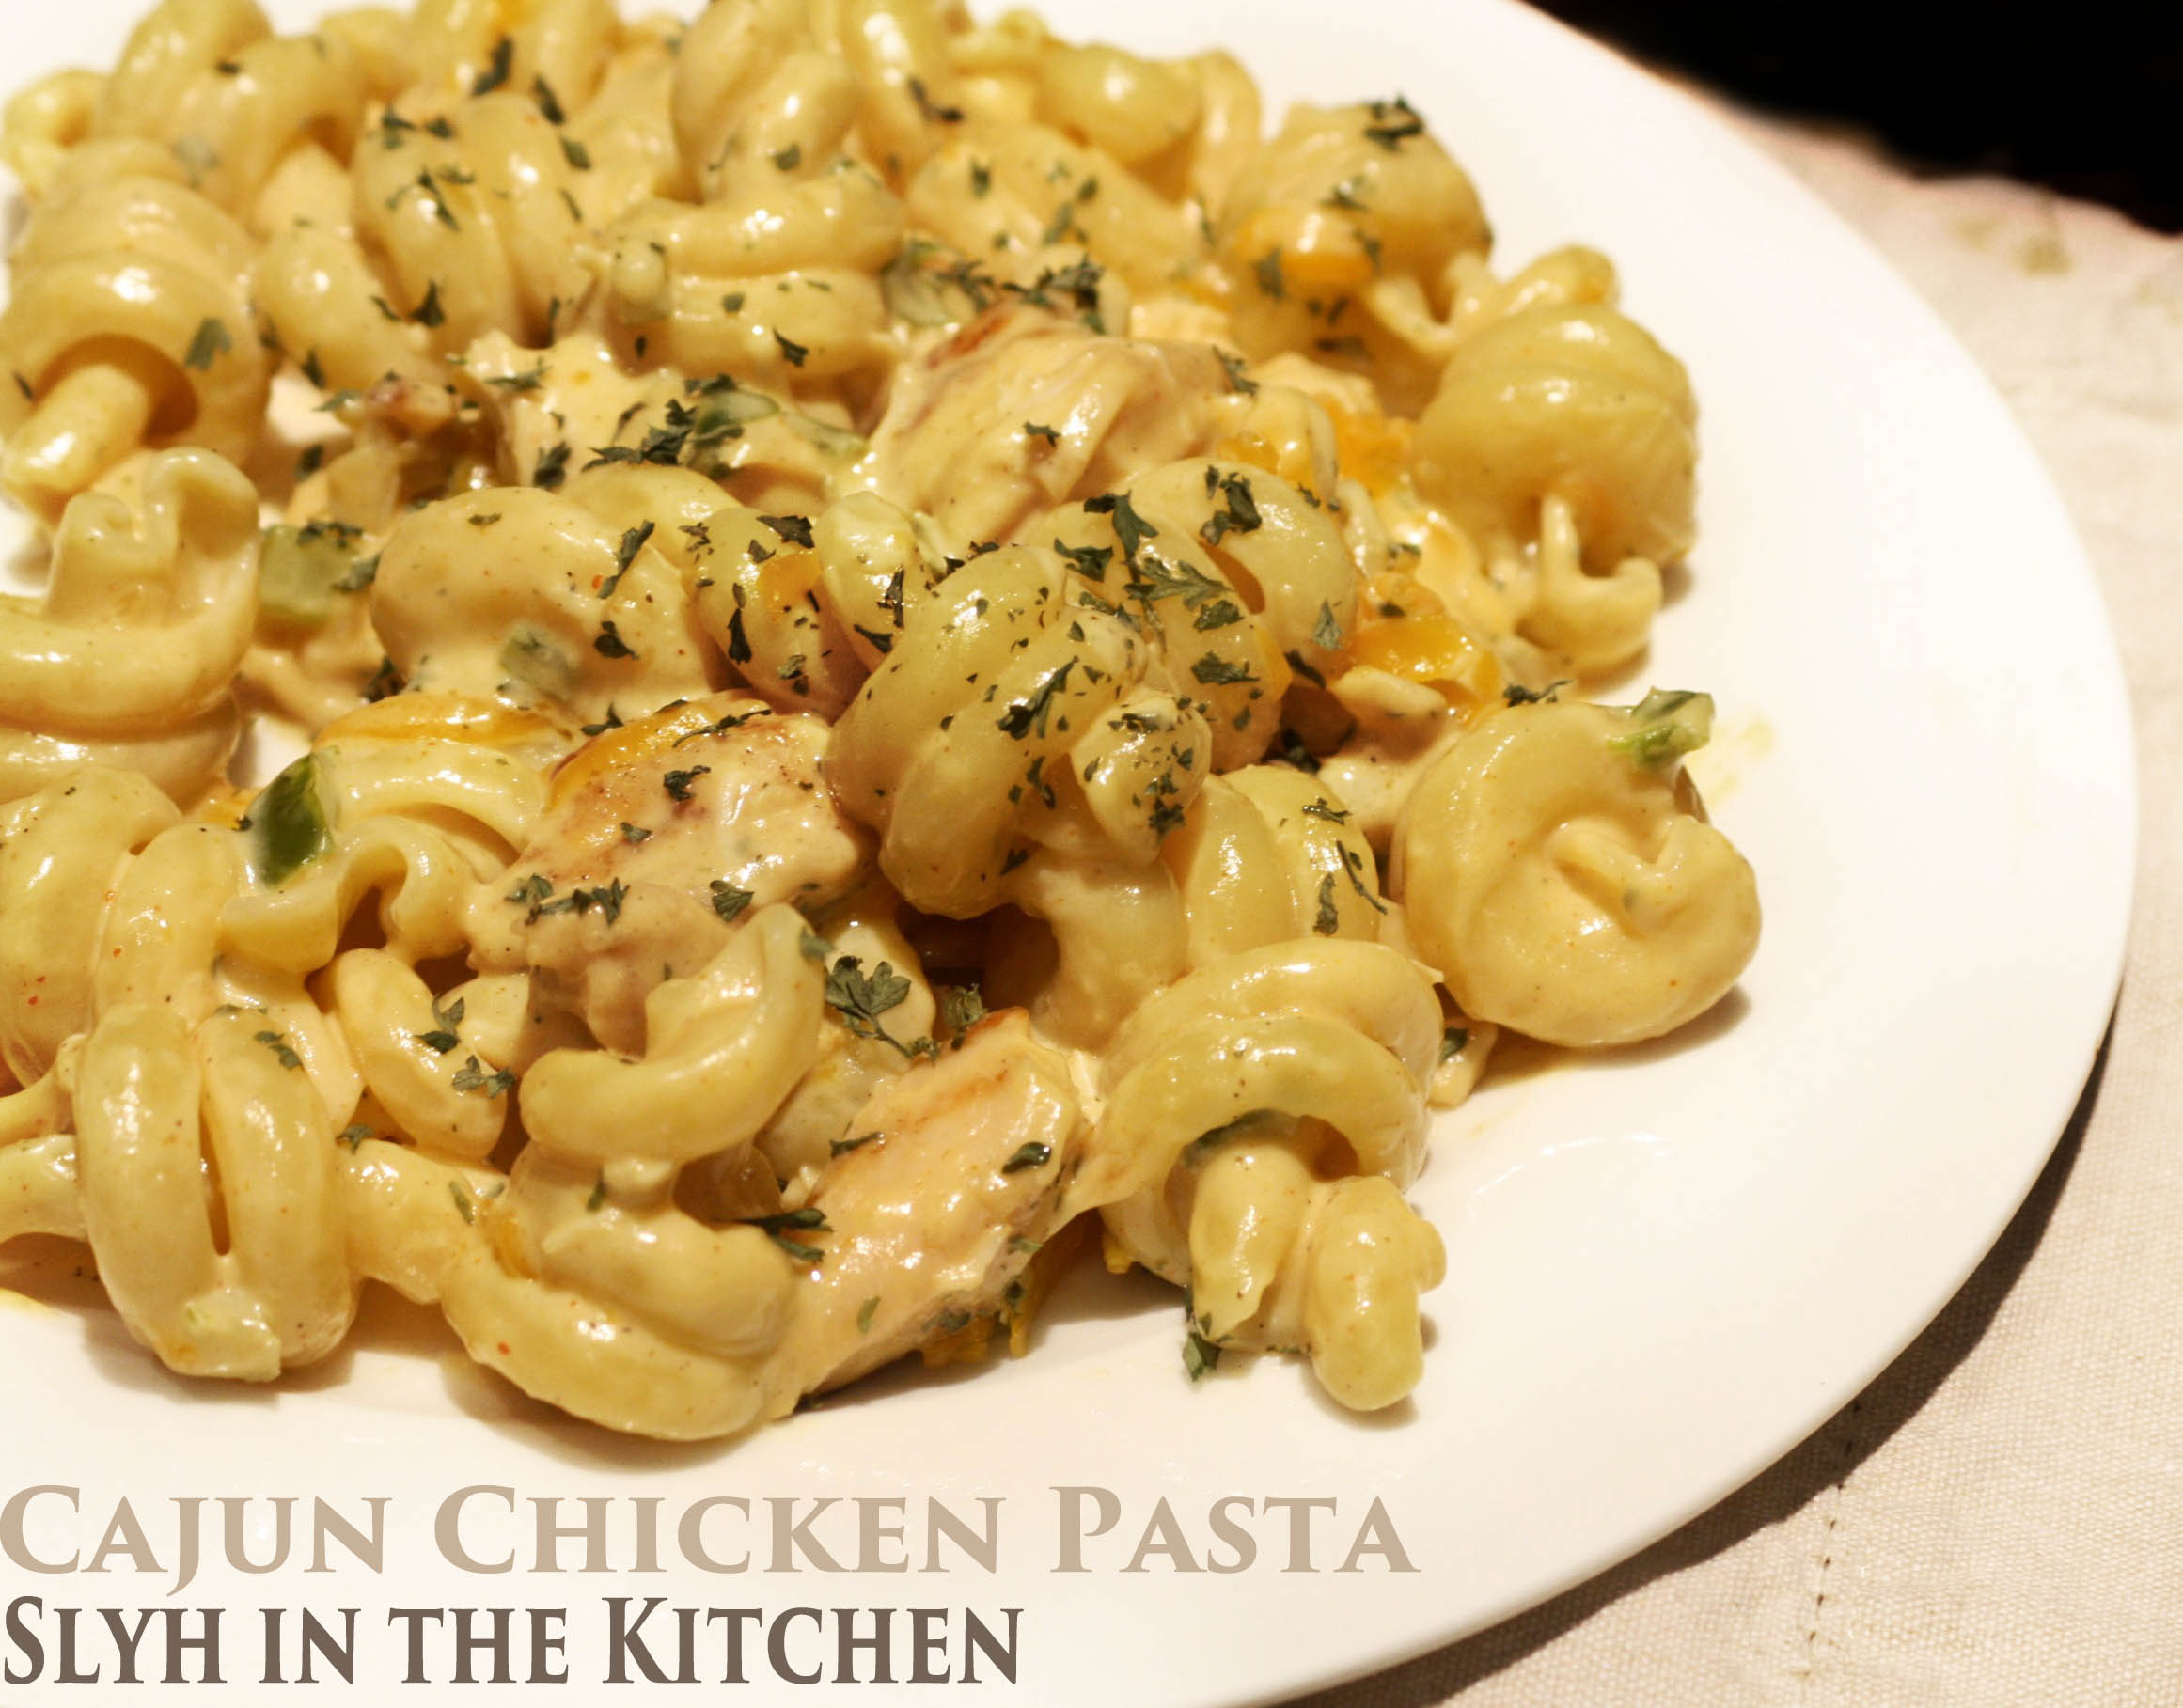 Cajun Chicken Pasta | Slyh in the Kitchen